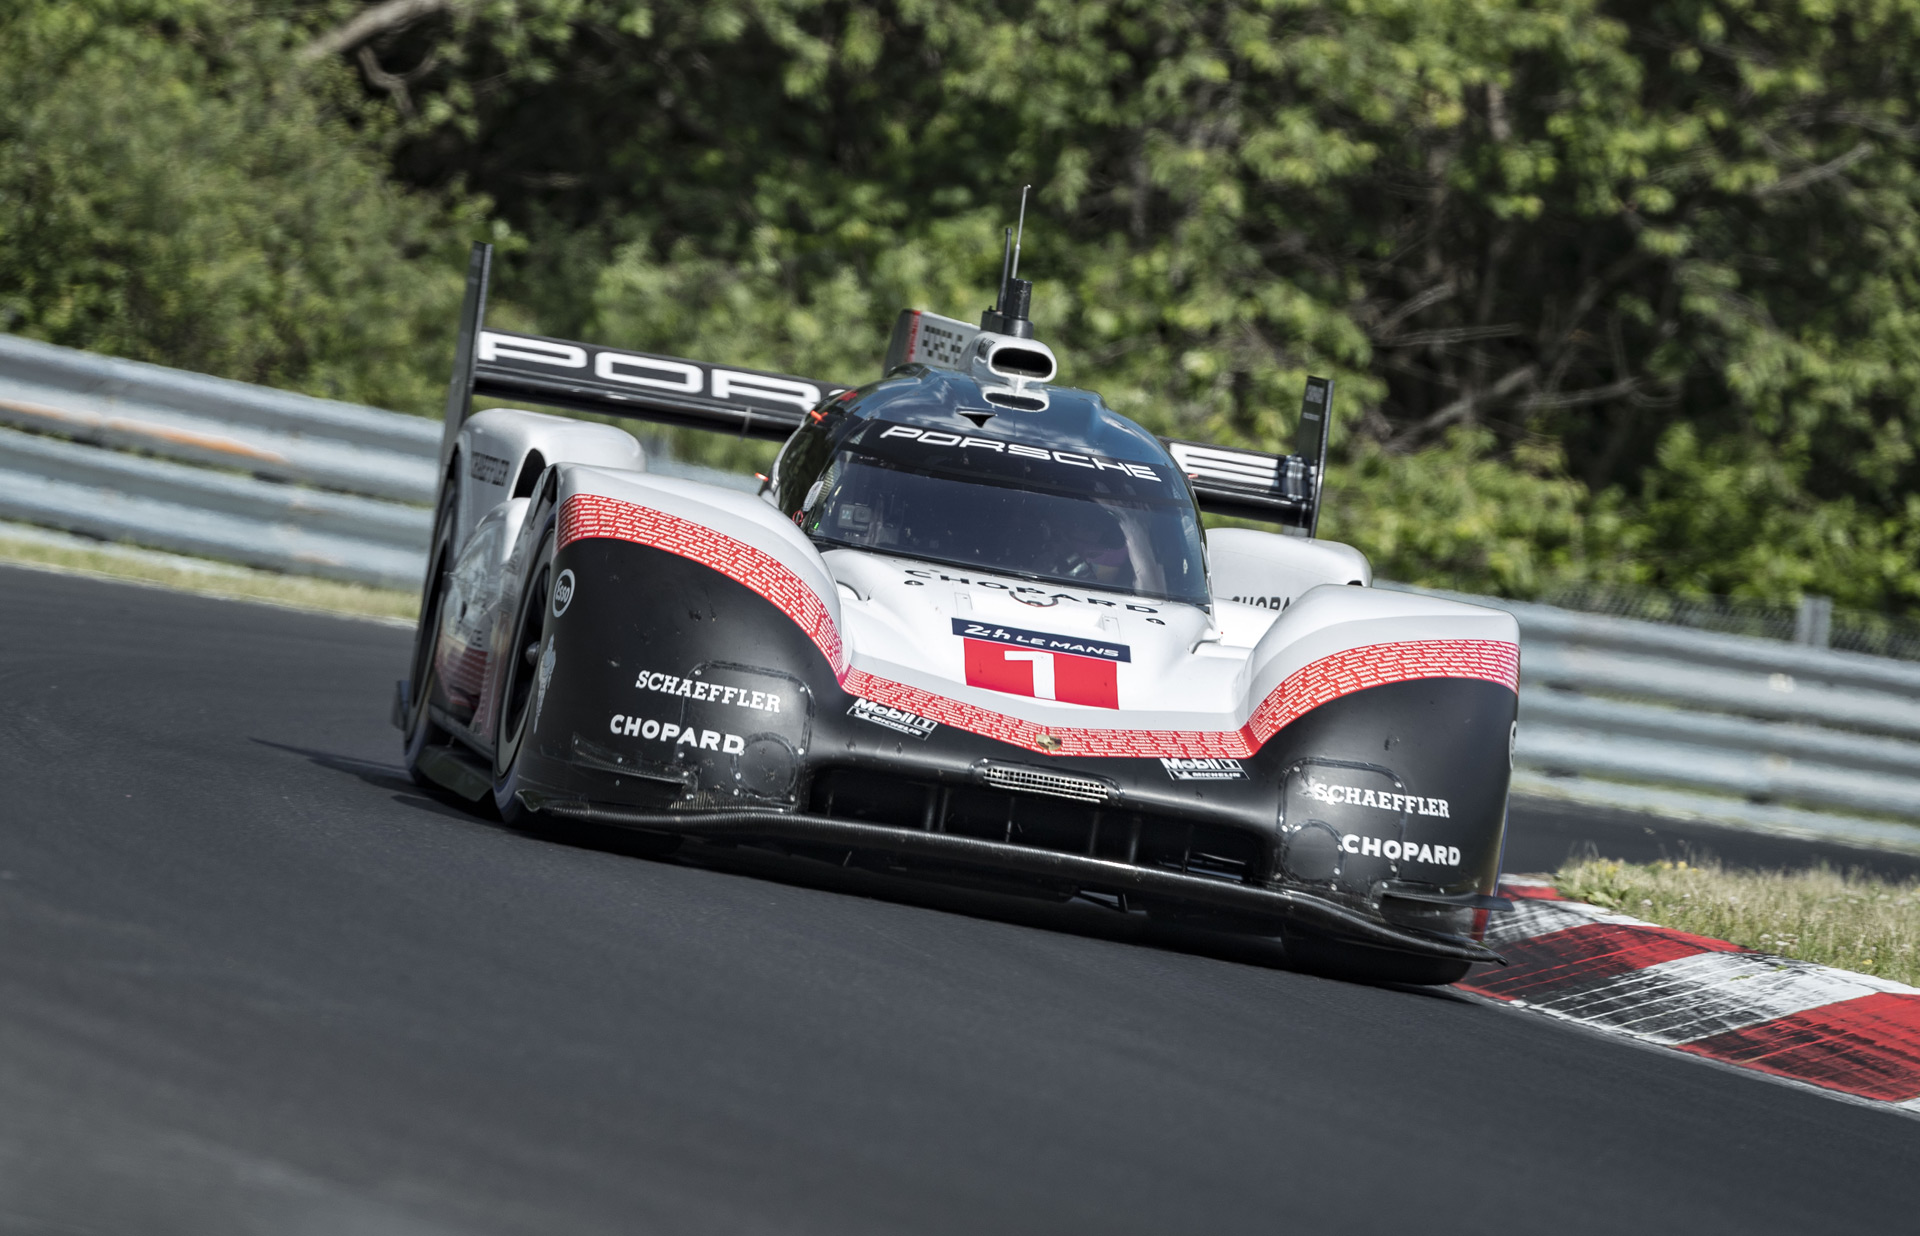 Sonax Amg Mercedes Clrp Lmp1: Porsche 919 Evo Obliterates Nürburgring Record With 5:19 Run